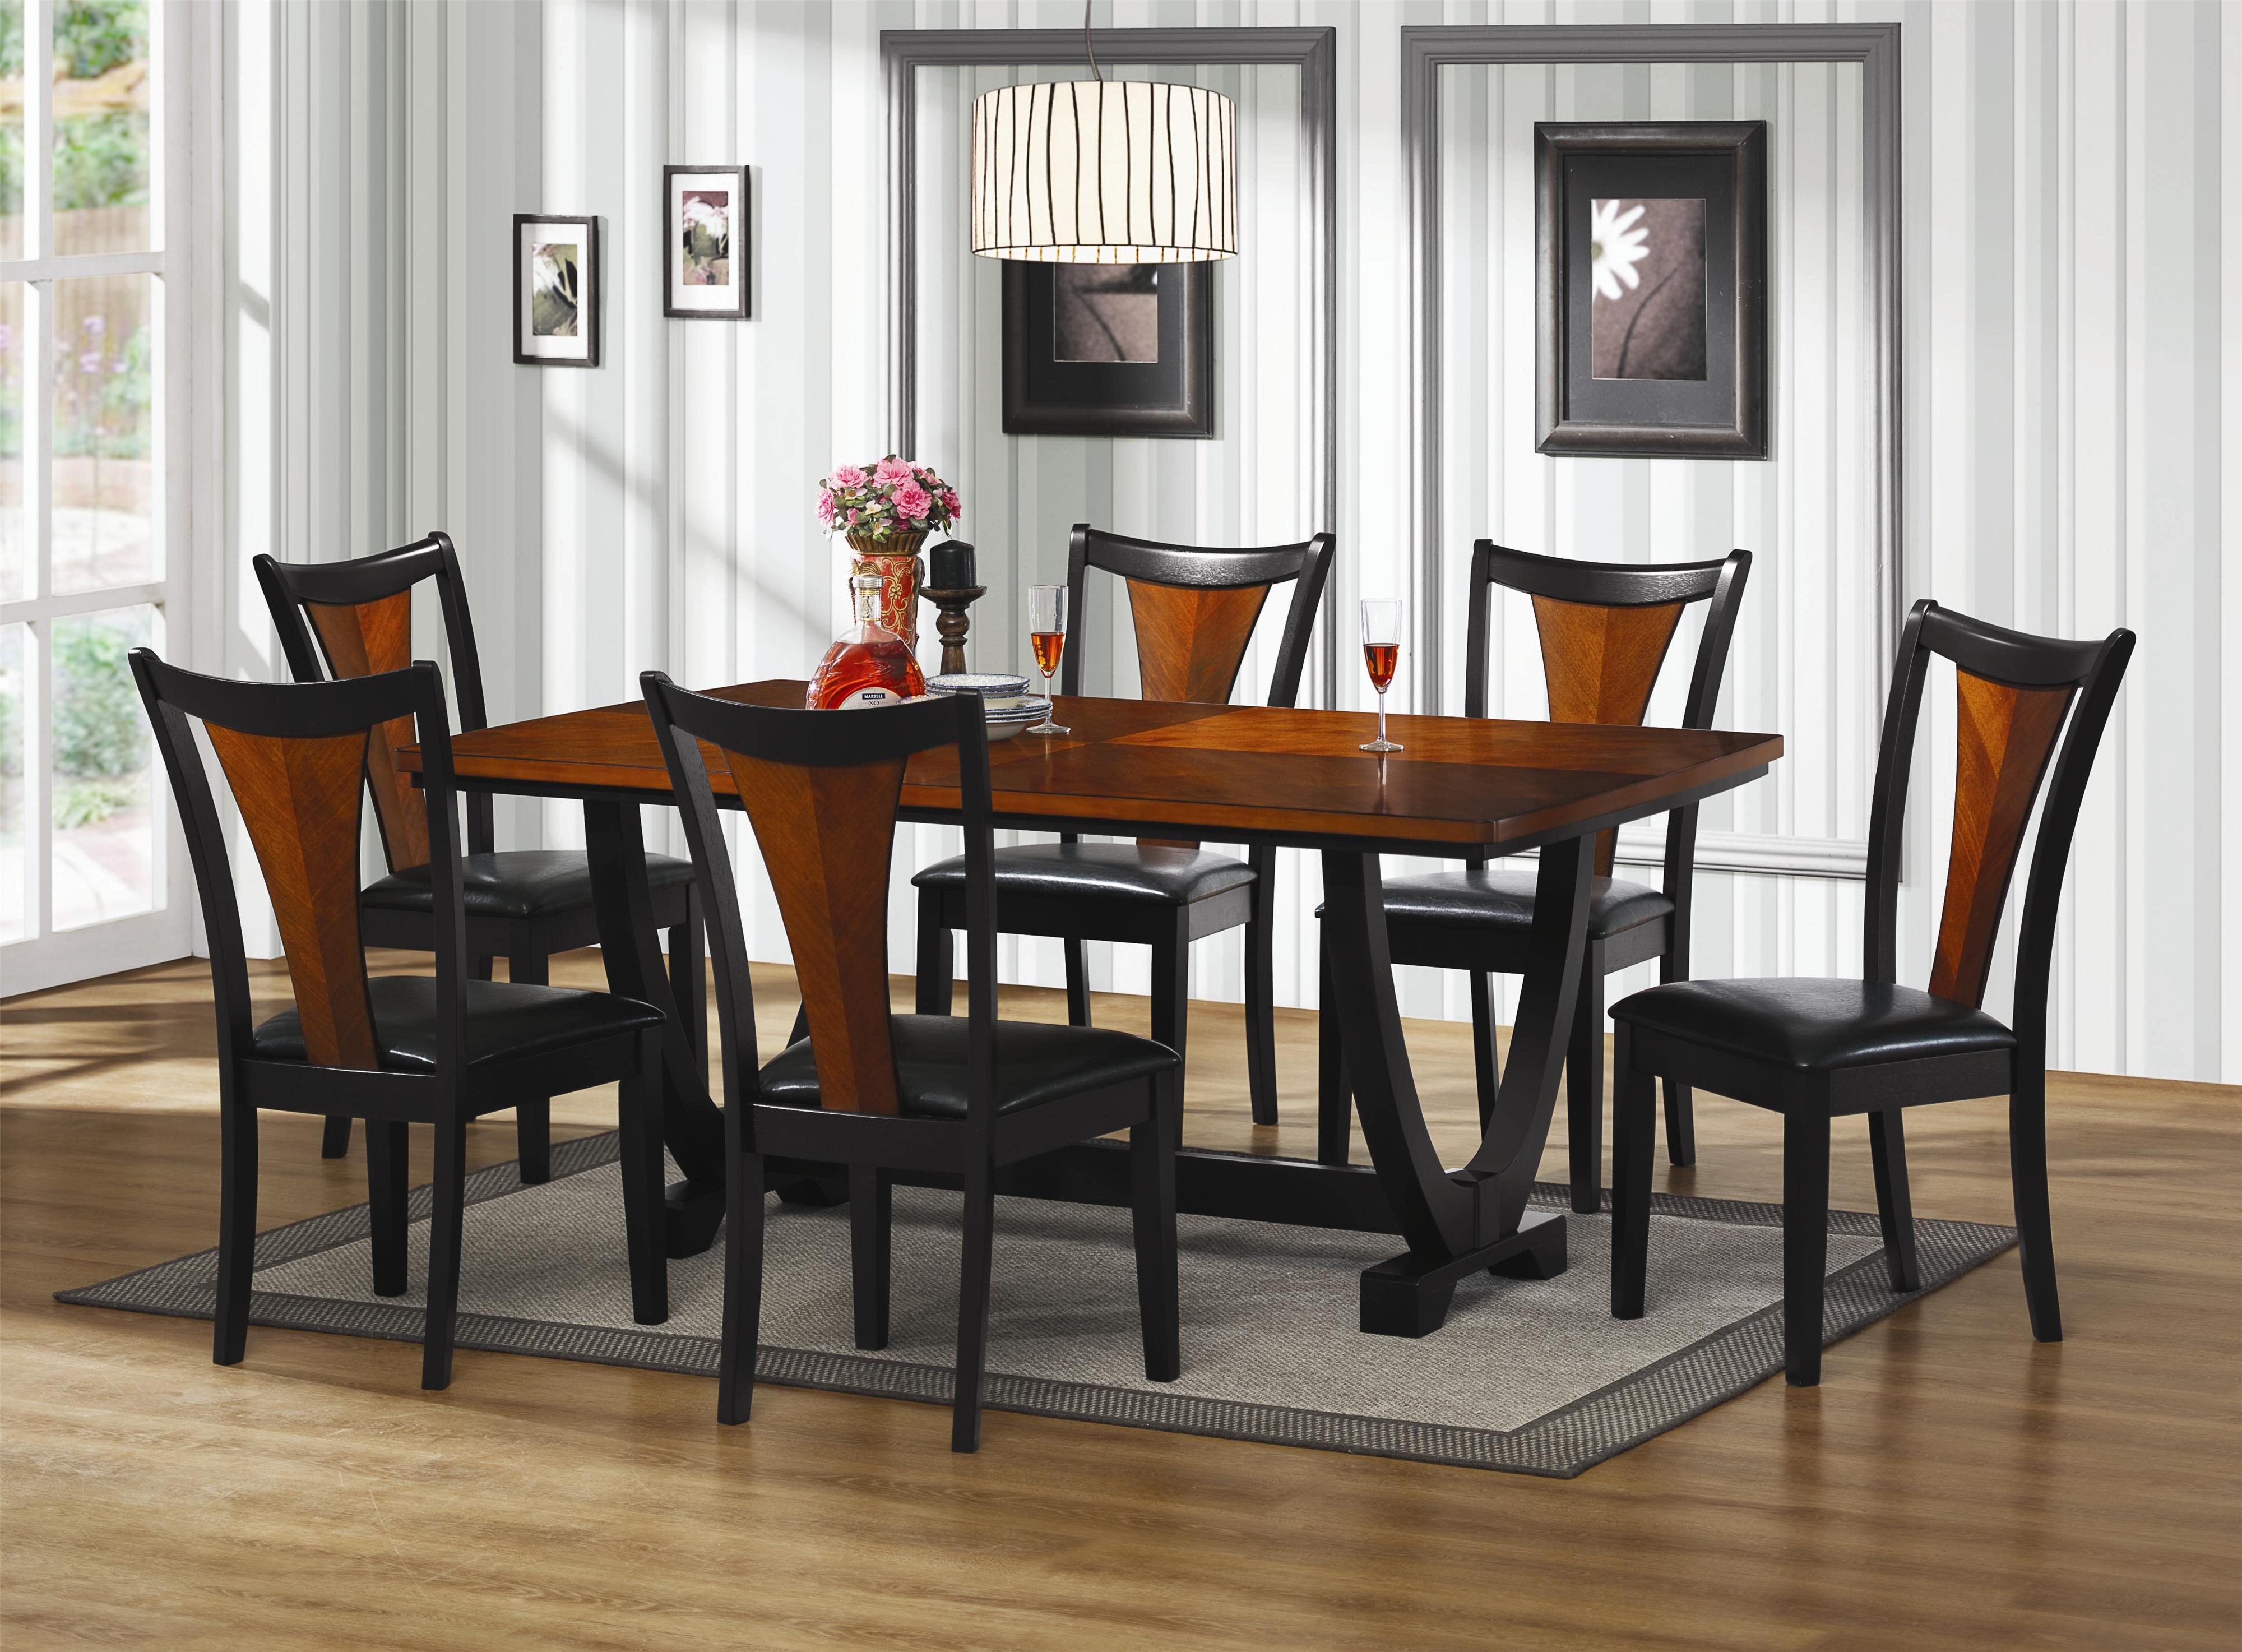 Dining Room Chairs Set Of 4 Warehouse M Pub Table With Bar